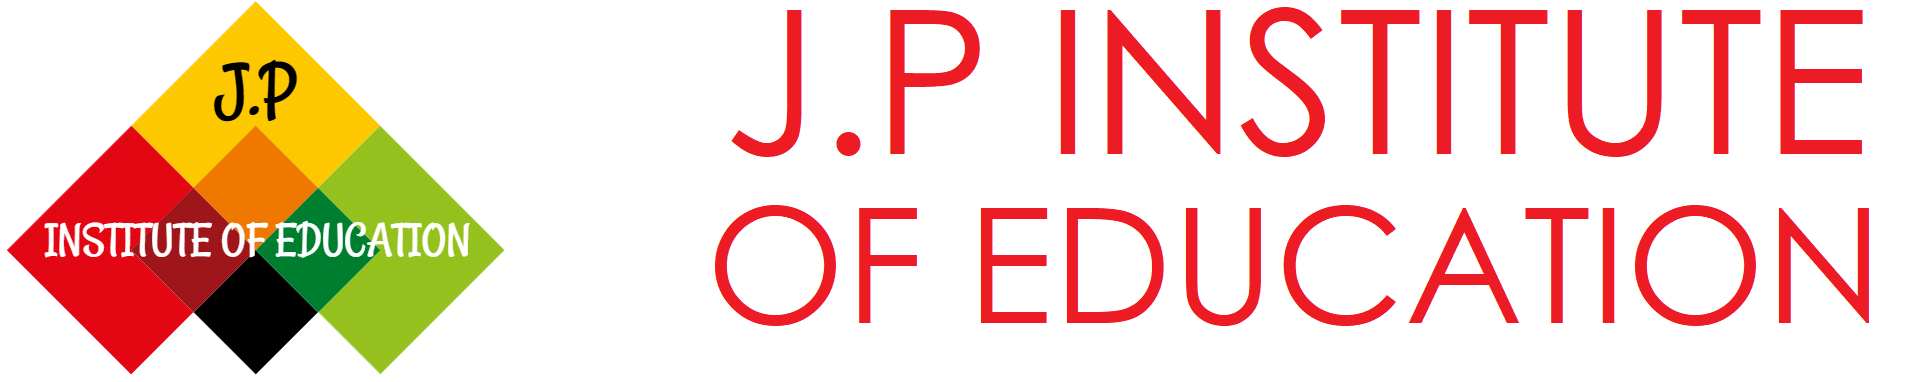 J.P INSTITUTE OF EDUCATION